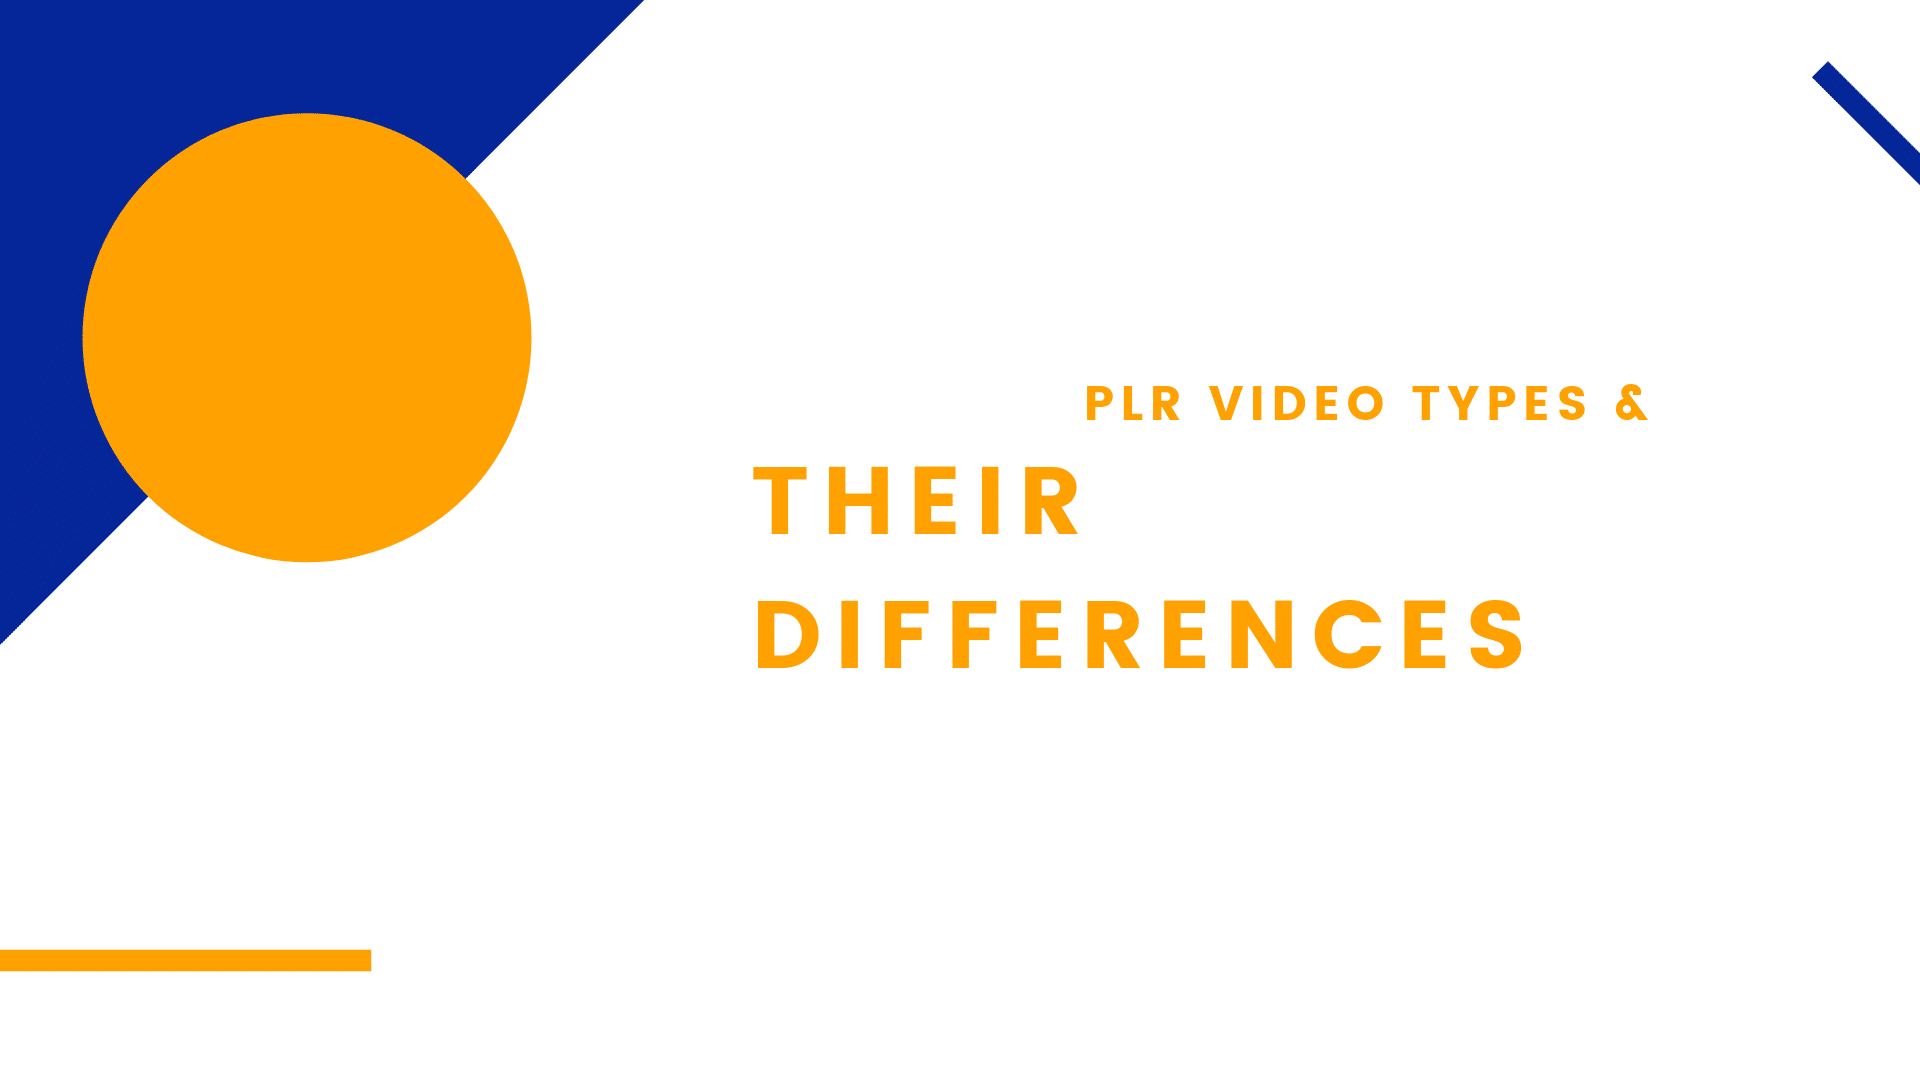 PLR Video Types and Their Differences